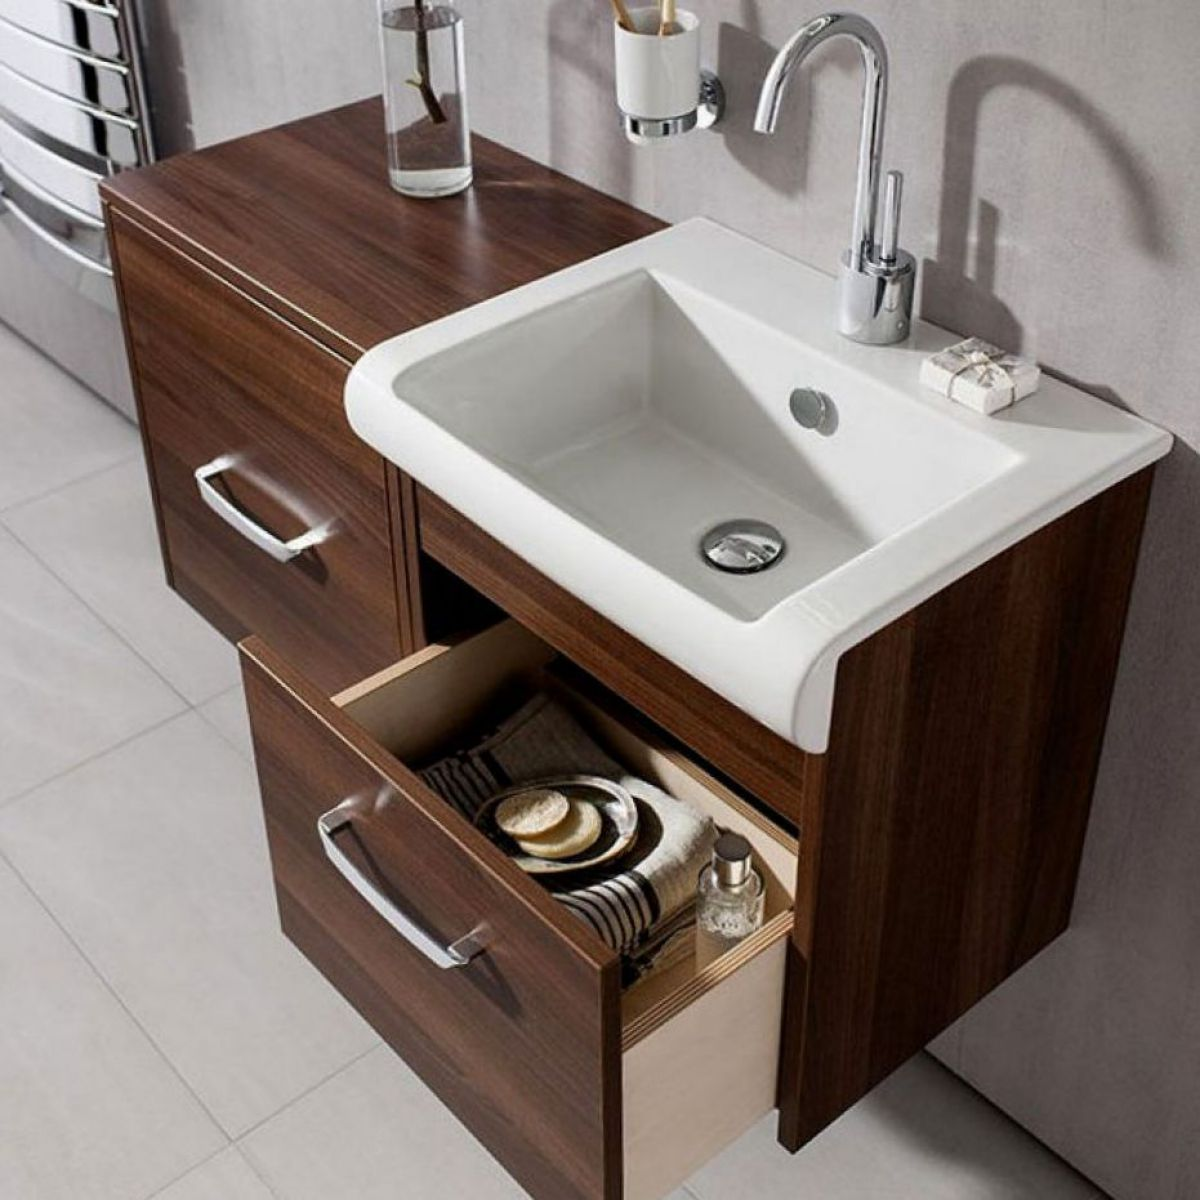 Bauhaus Bathroom Furniture Best Home Design 2018